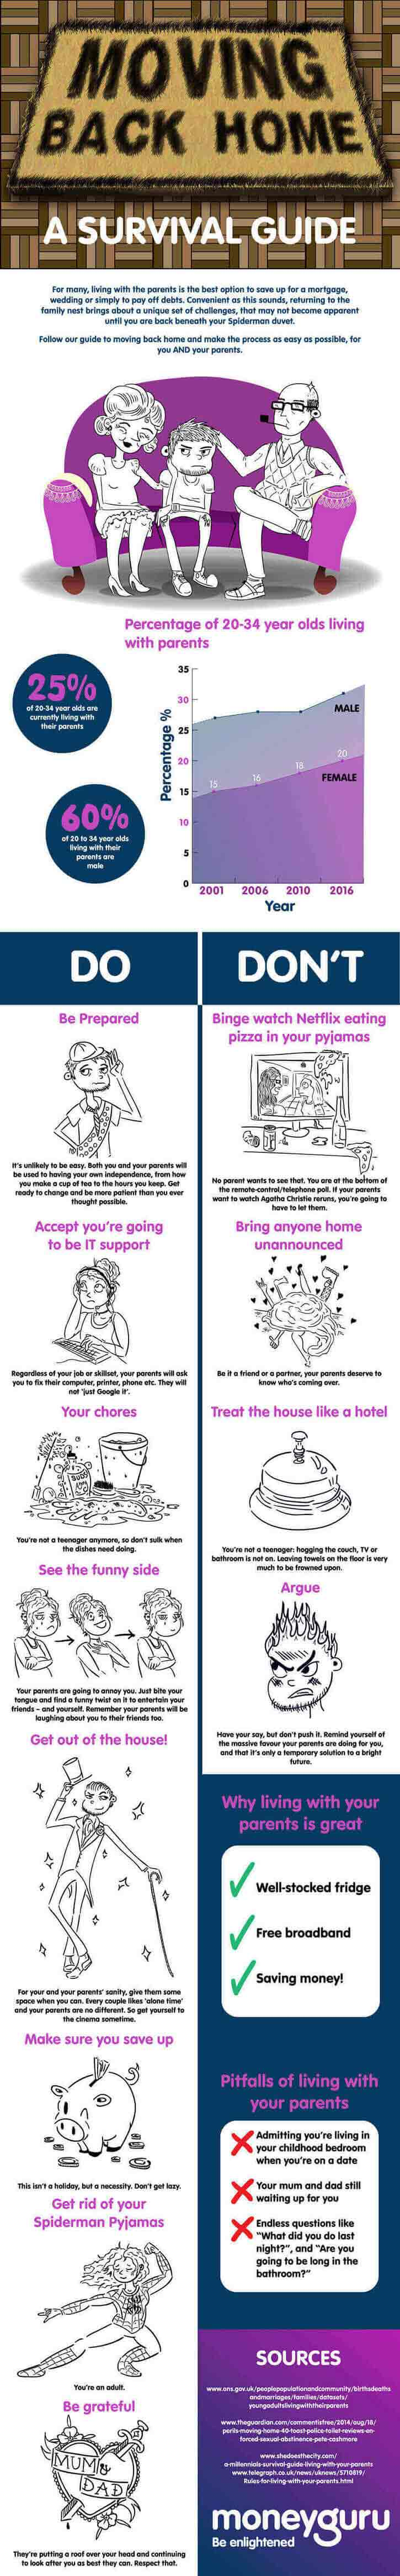 Moving Back home infographic